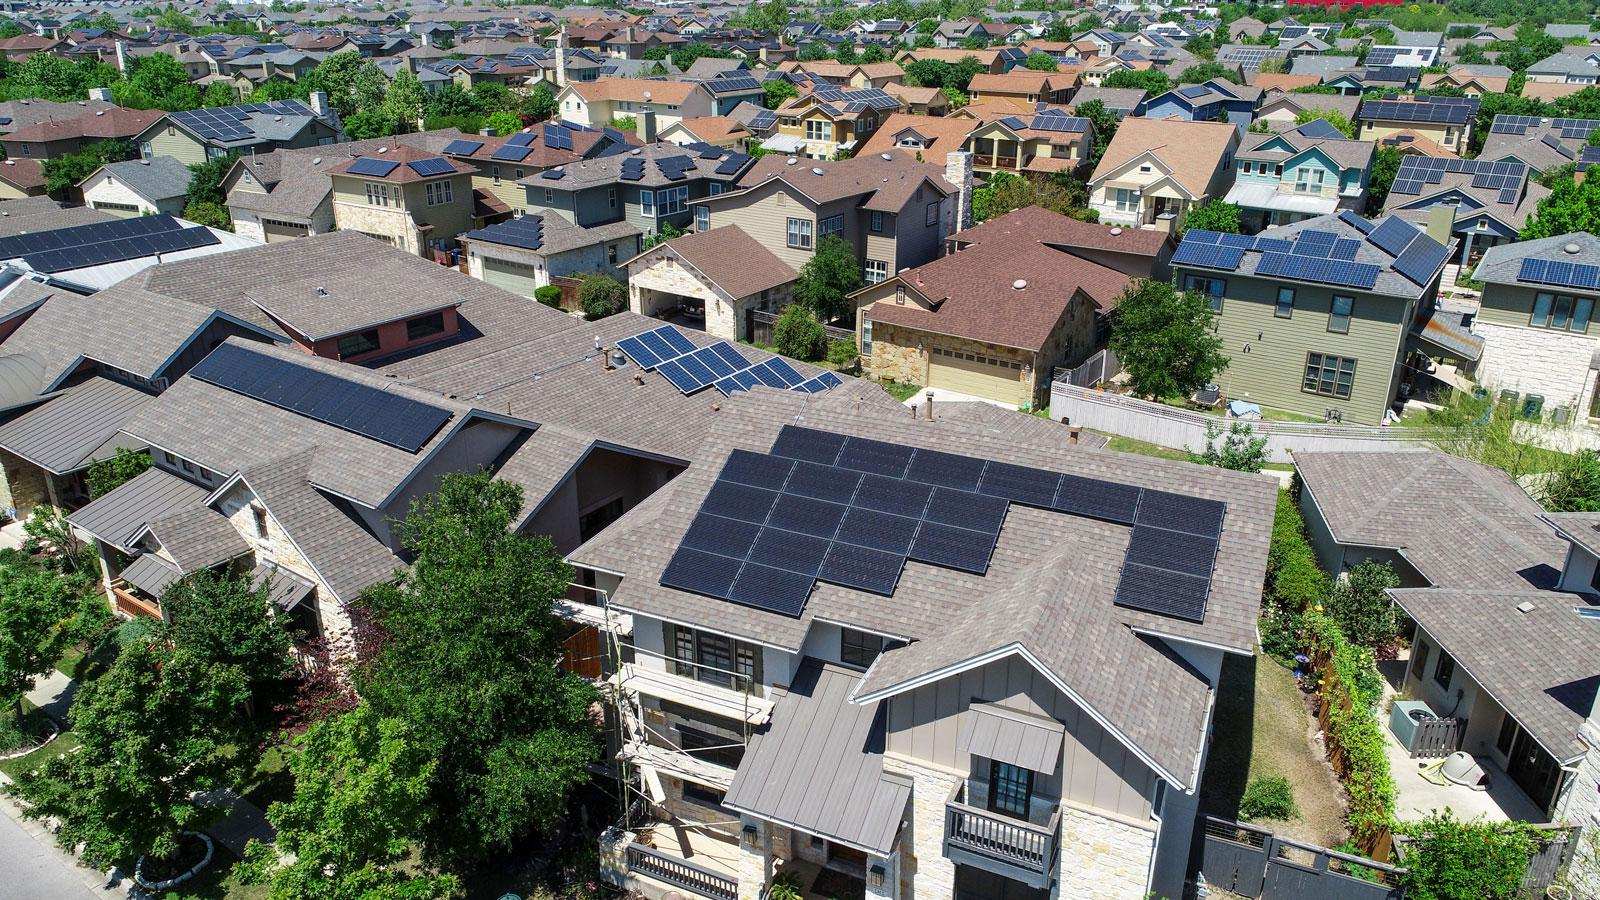 <h4>首页s 去太阳</h4><h5>Our 首页s 去太阳 campaign is urging state leaders to make solar standard on all new homes — because every new home built without solar panels is a missed opportunity to reduce pollution and leave our children a more livable planet.</h5><em>Roschetzky Photography via Shutterstock.com</em>